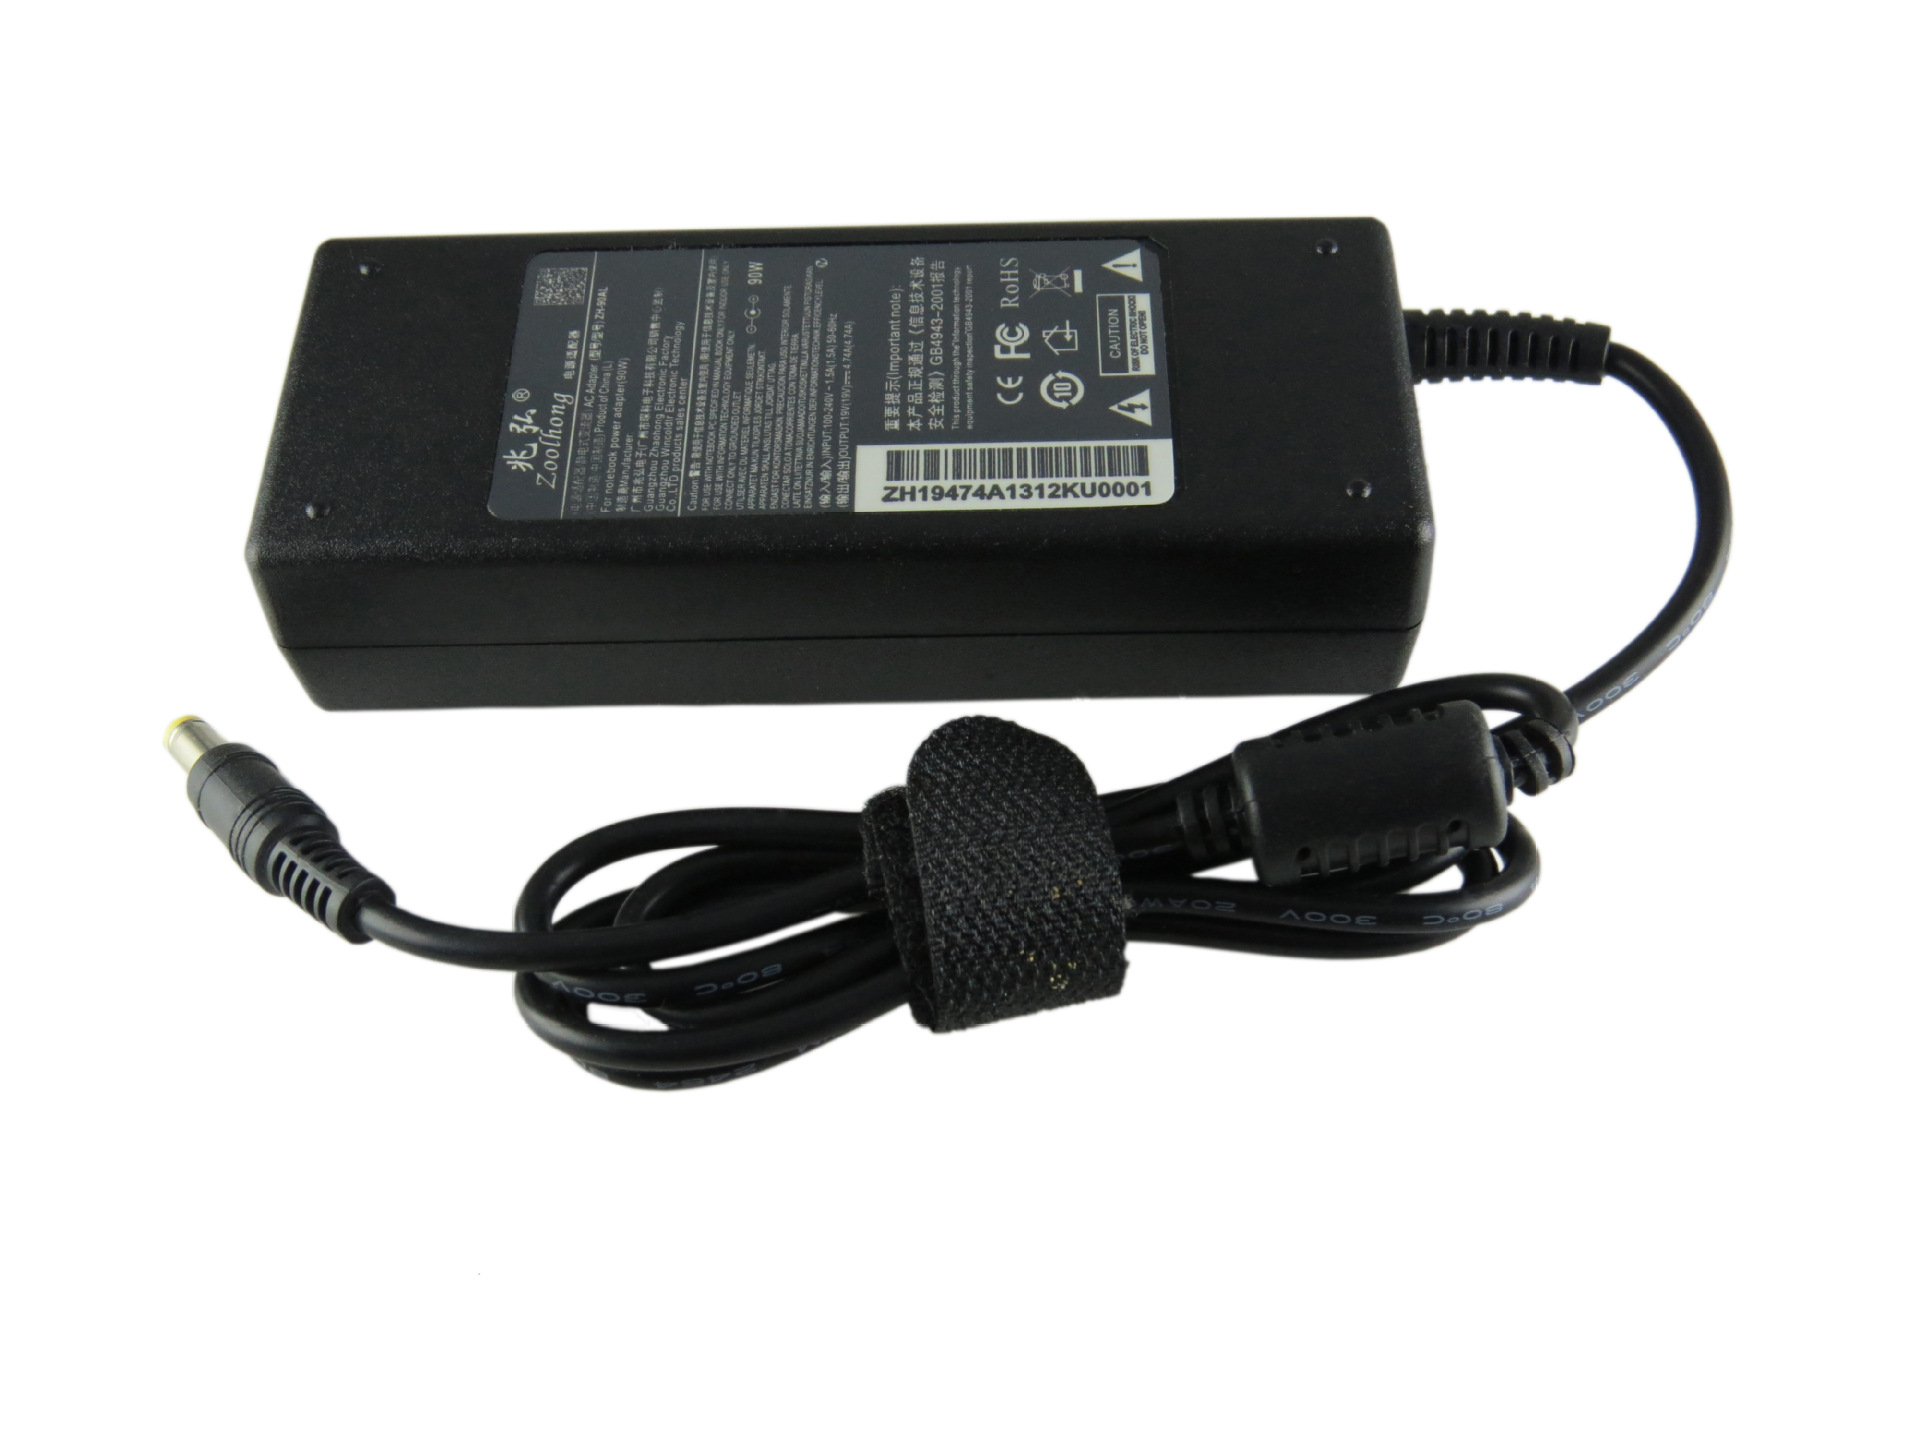 Caricabatteria da 19 V 4.74A 90W Laptop Ac Power Adapter per Acer Aspire 4710G 4720G 4730 492Ac 3020 5020 8200 4910 5551 5552 5,5 Mm * 1,7 Mm